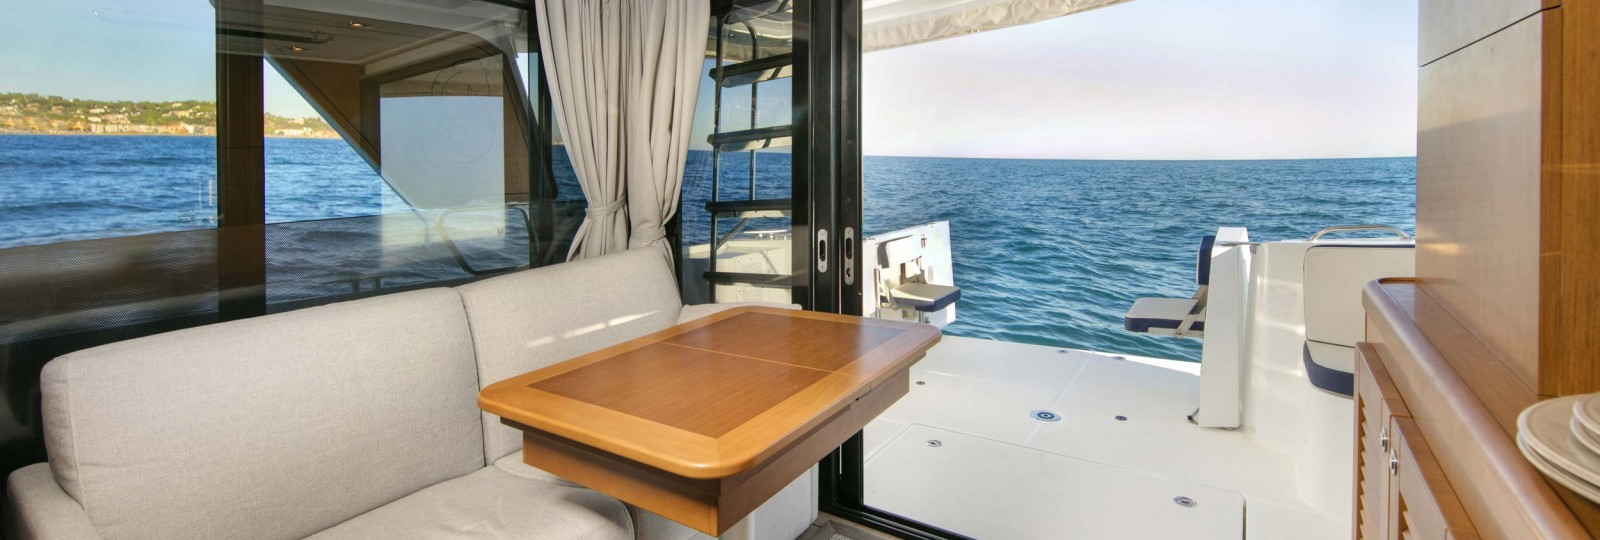 Beneteau Swift Trawler 35 saloon and cockpit